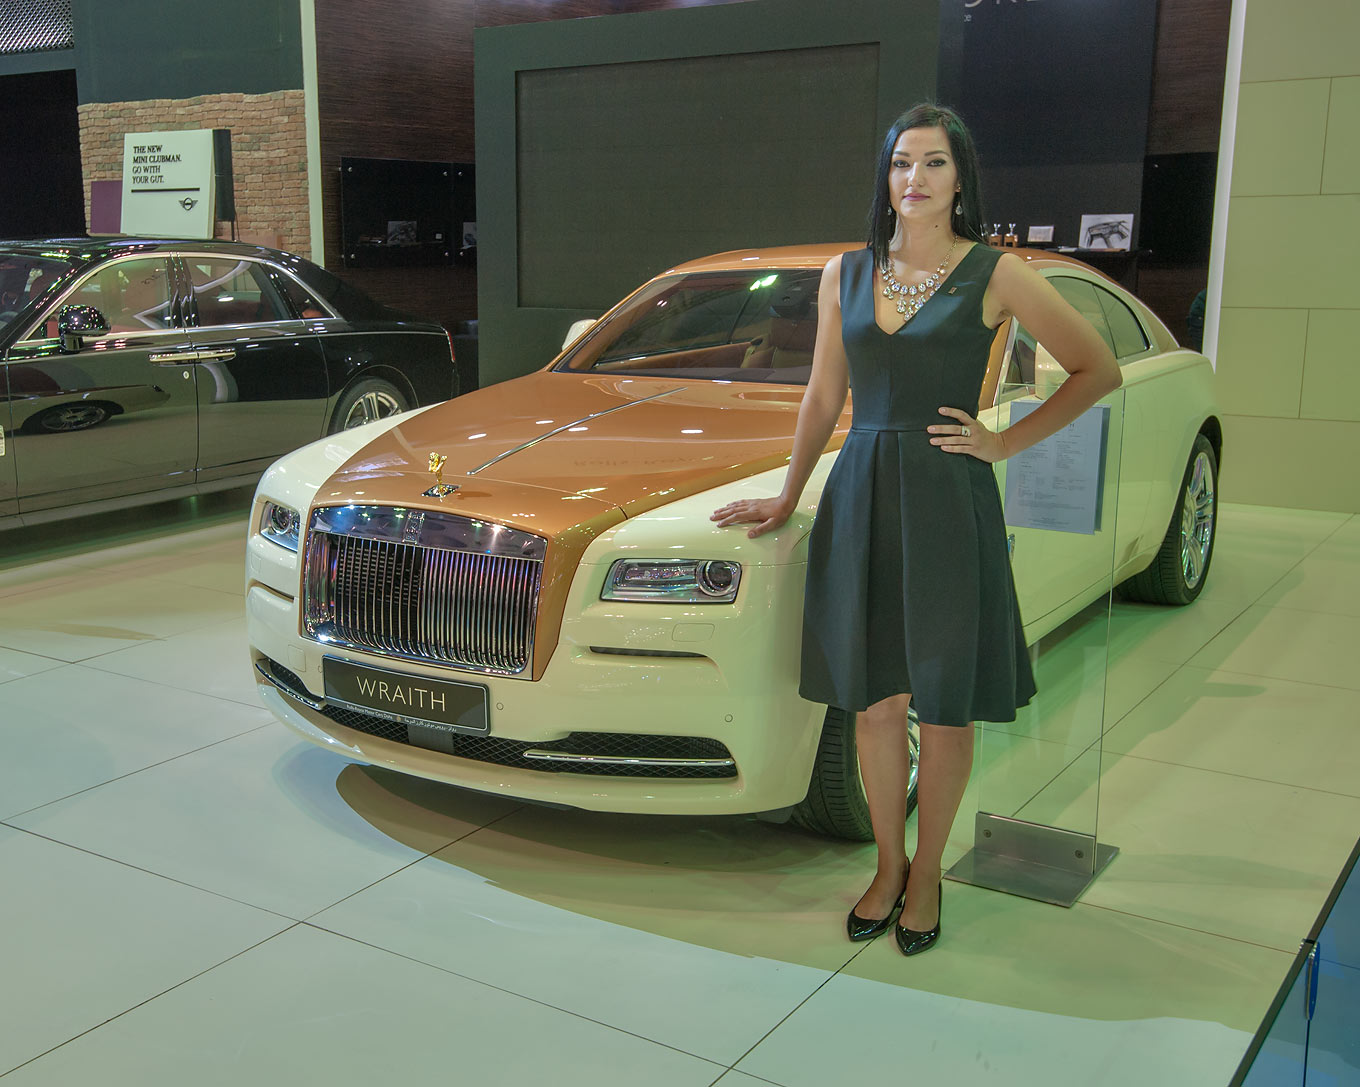 Brownish Rolls-Royce Wrath car at a motor show in...near City Center mall. Doha, Qatar